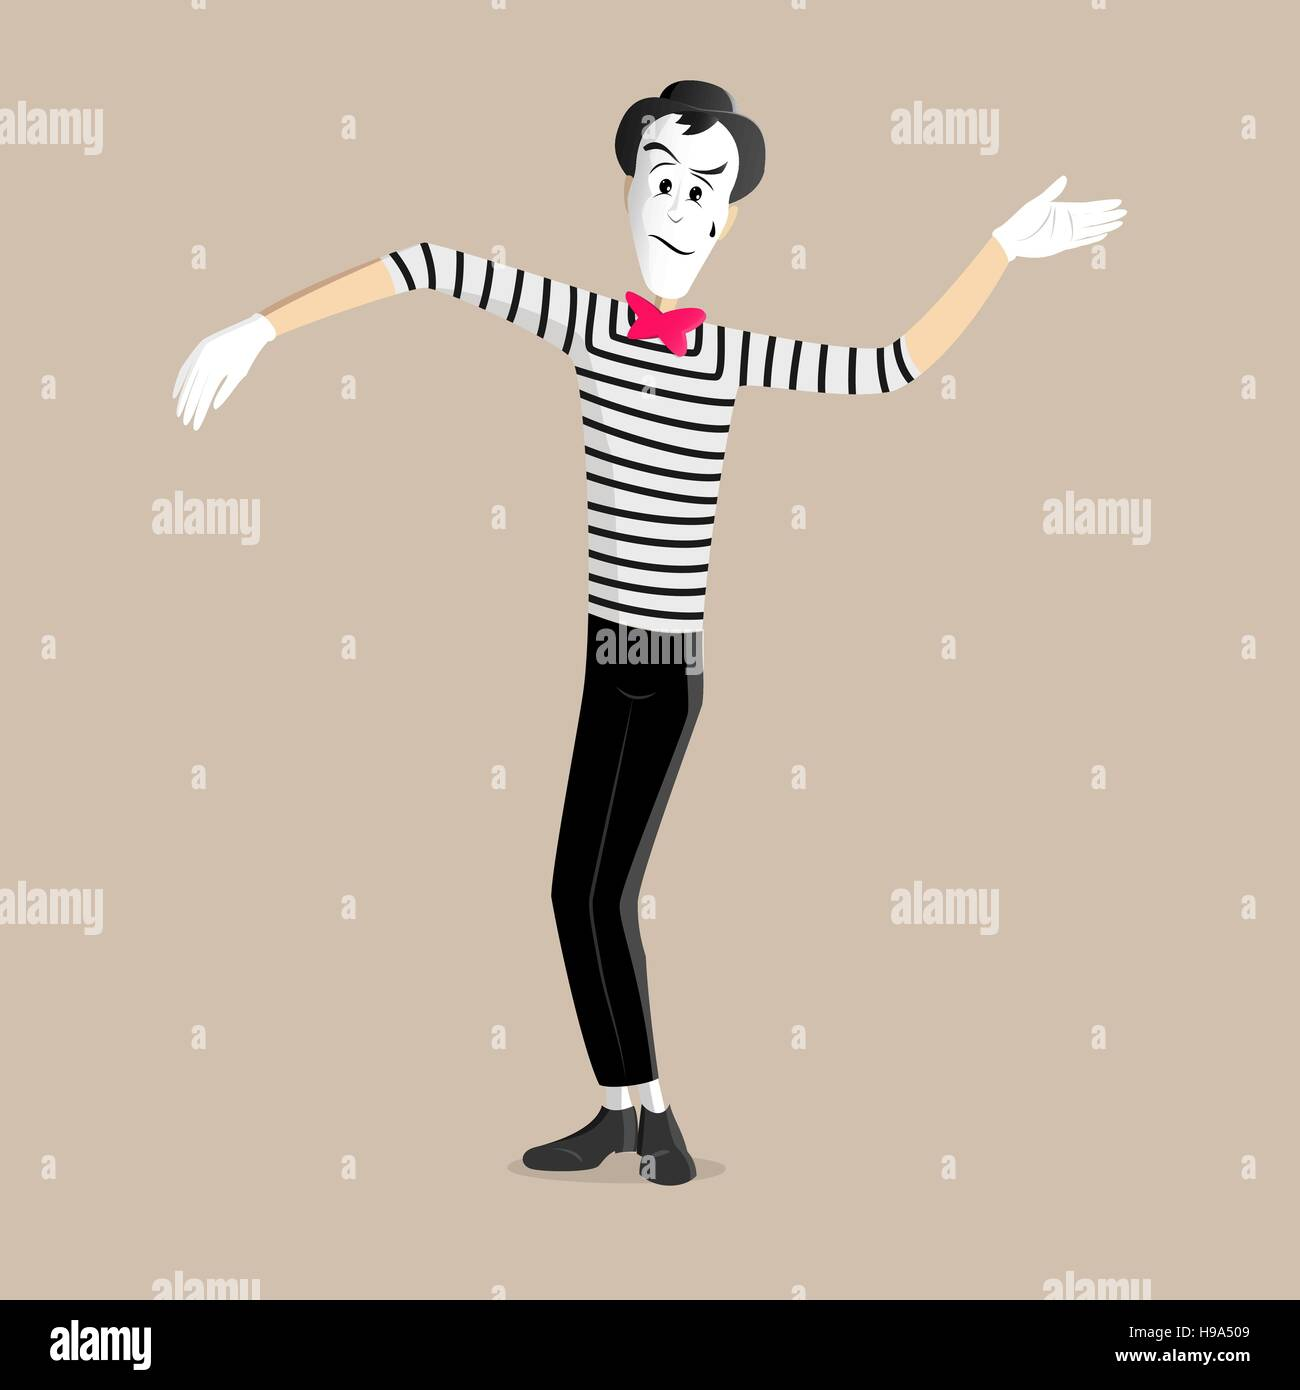 A Mime performing a pantomime called waving - Stock Vector